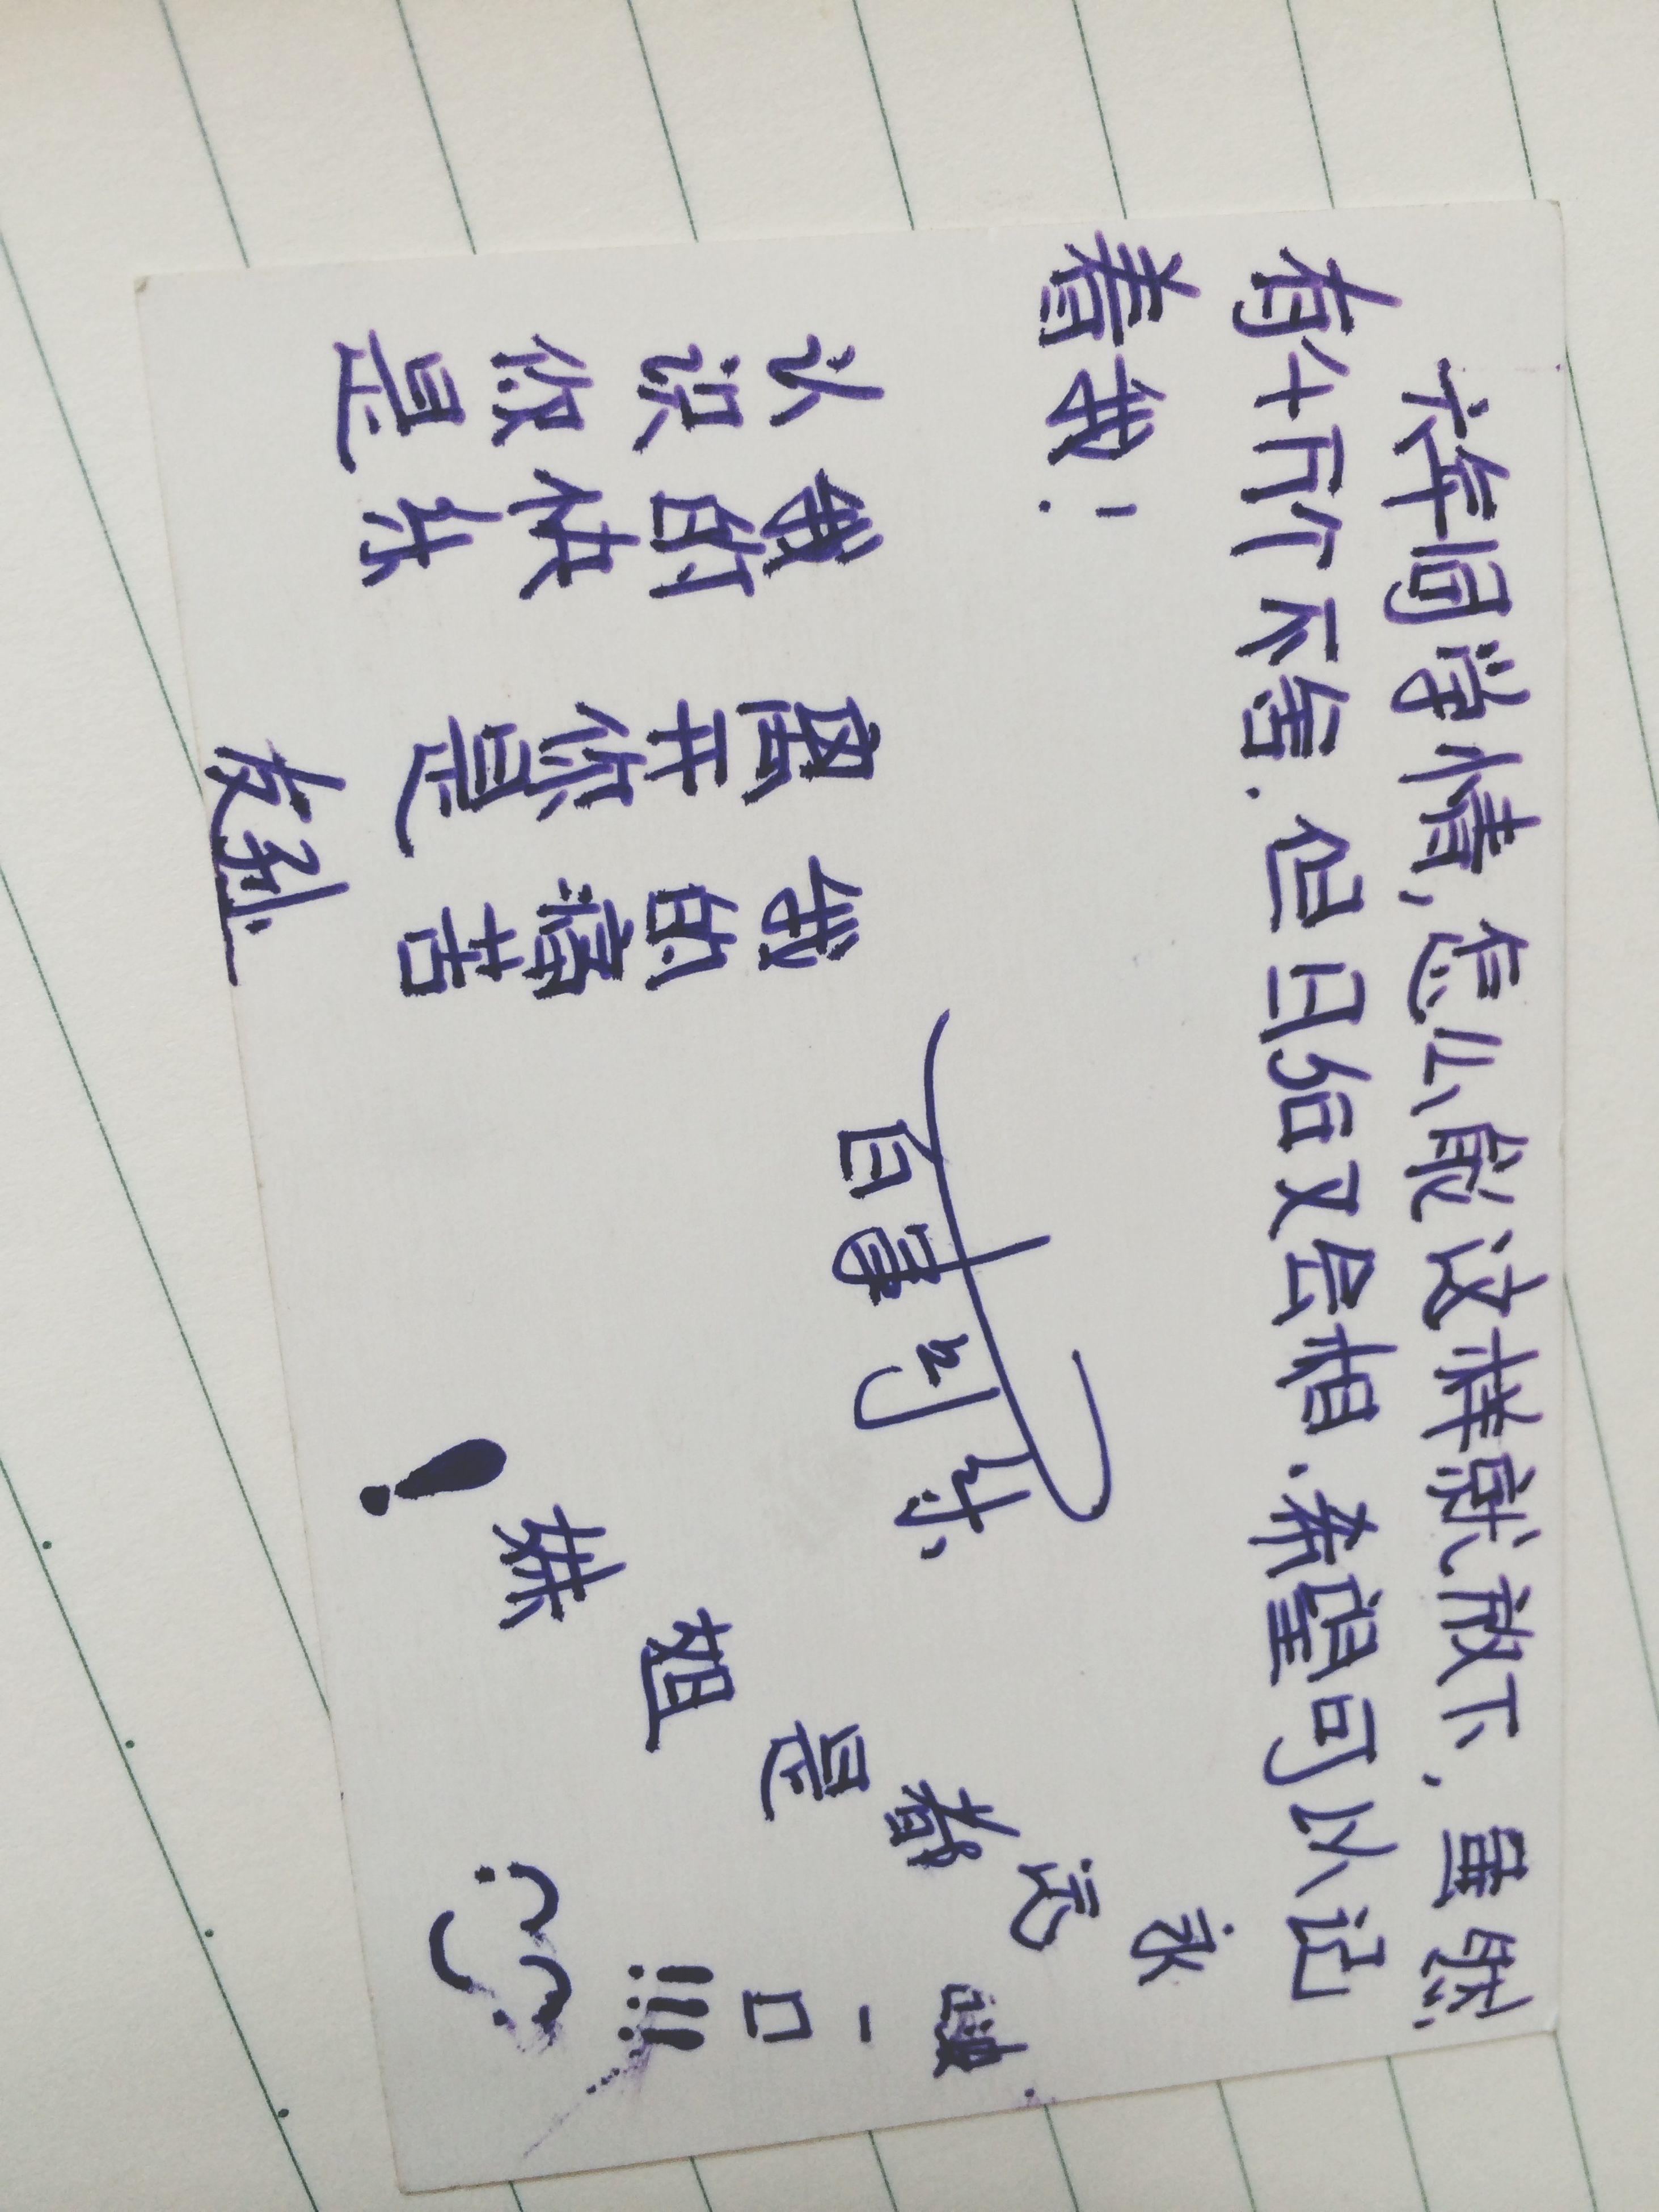 text, western script, communication, indoors, non-western script, capital letter, information, number, sign, information sign, high angle view, close-up, message, guidance, wall - building feature, paper, handwriting, no people, arrow symbol, white color